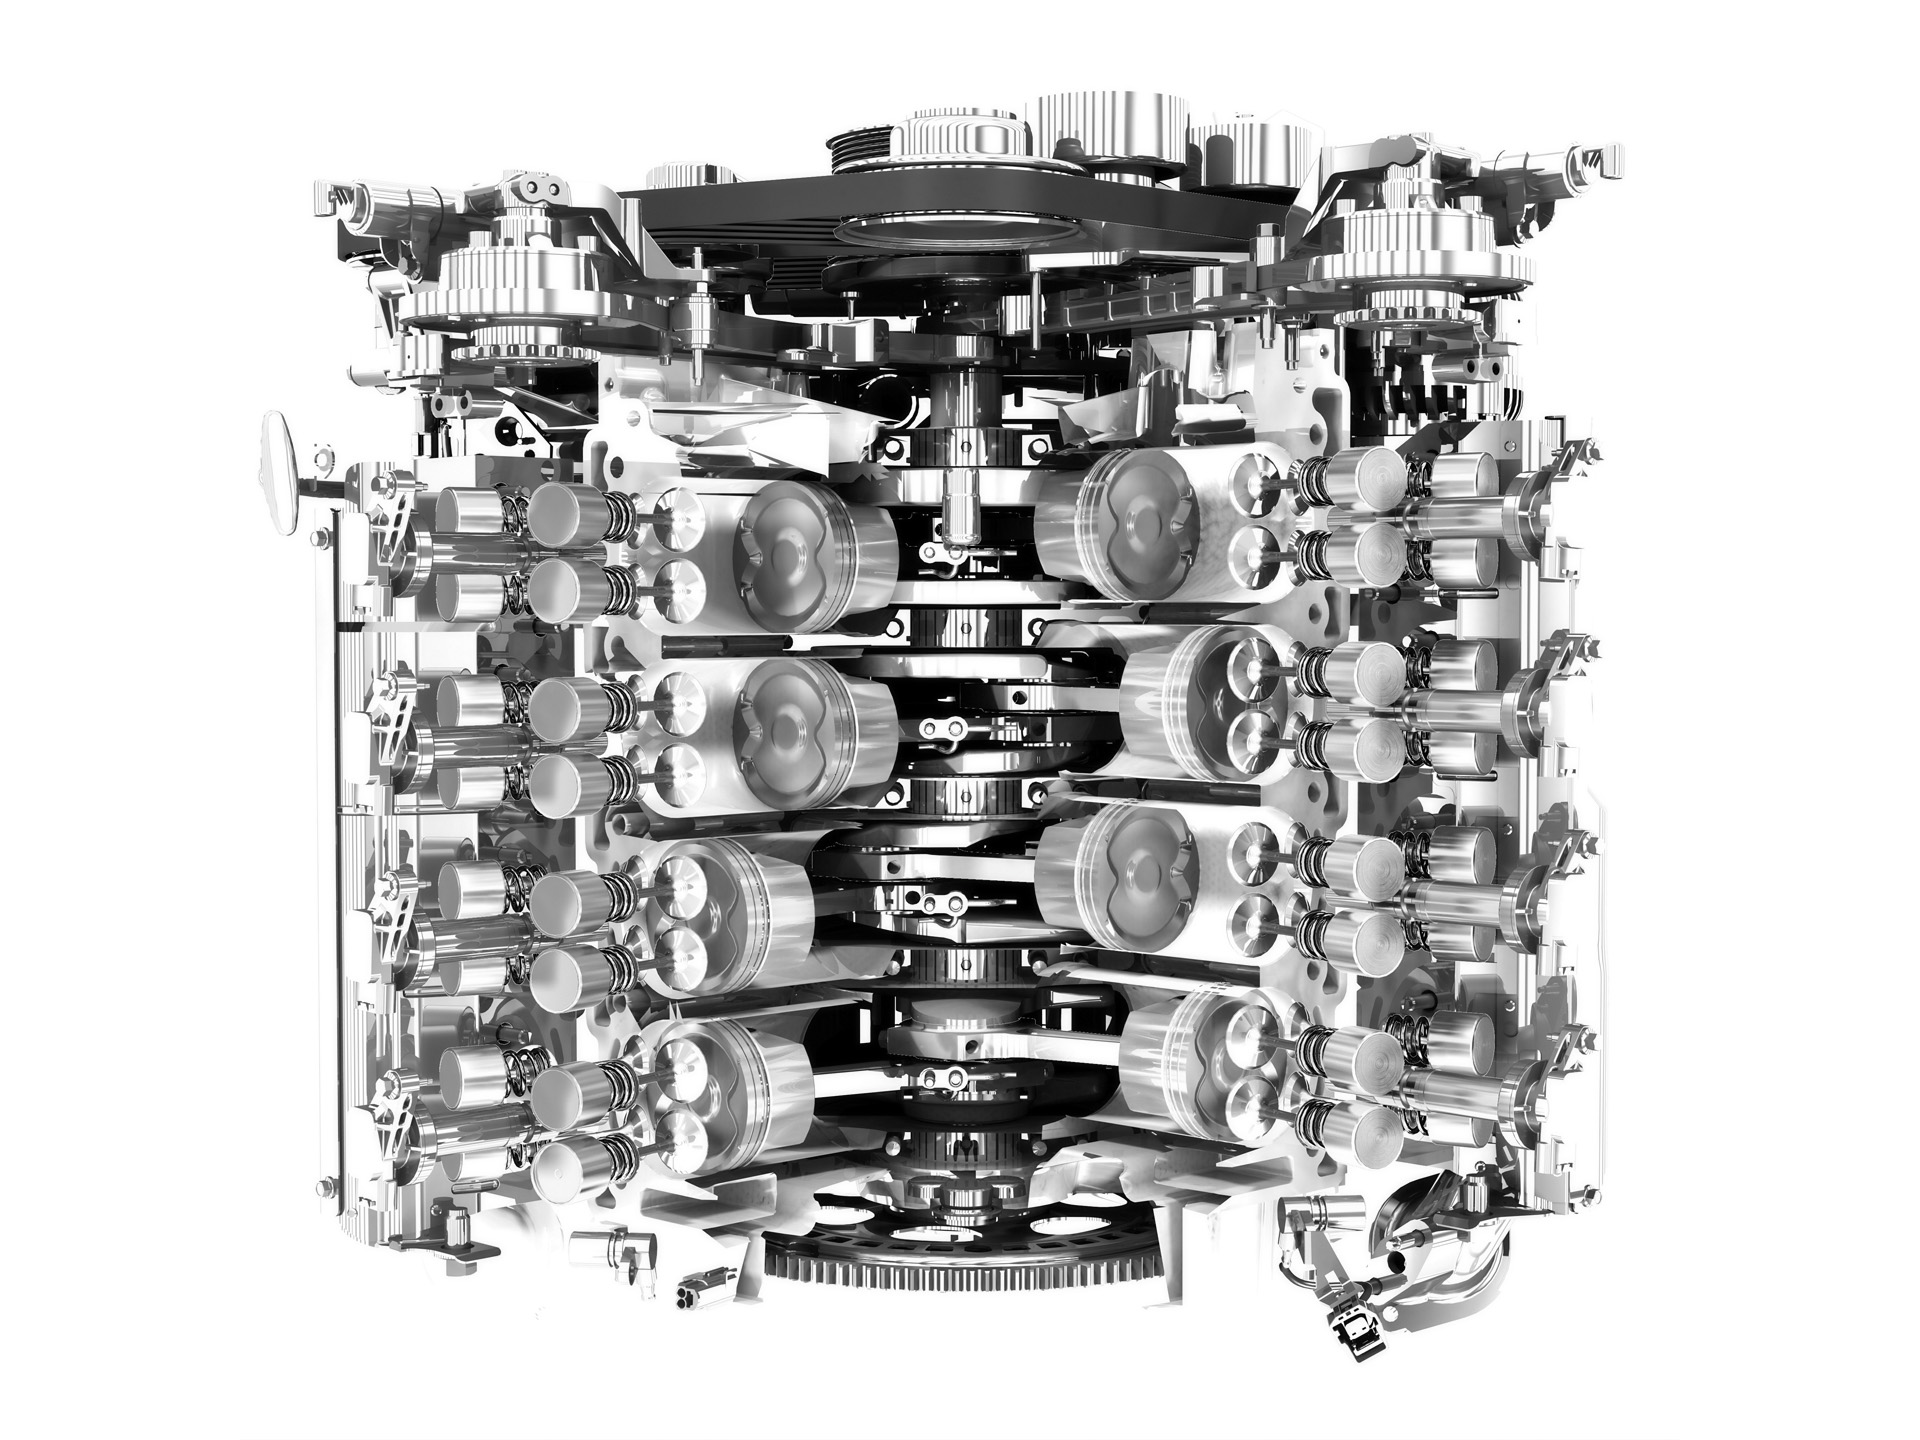 Sample P1140 Engine